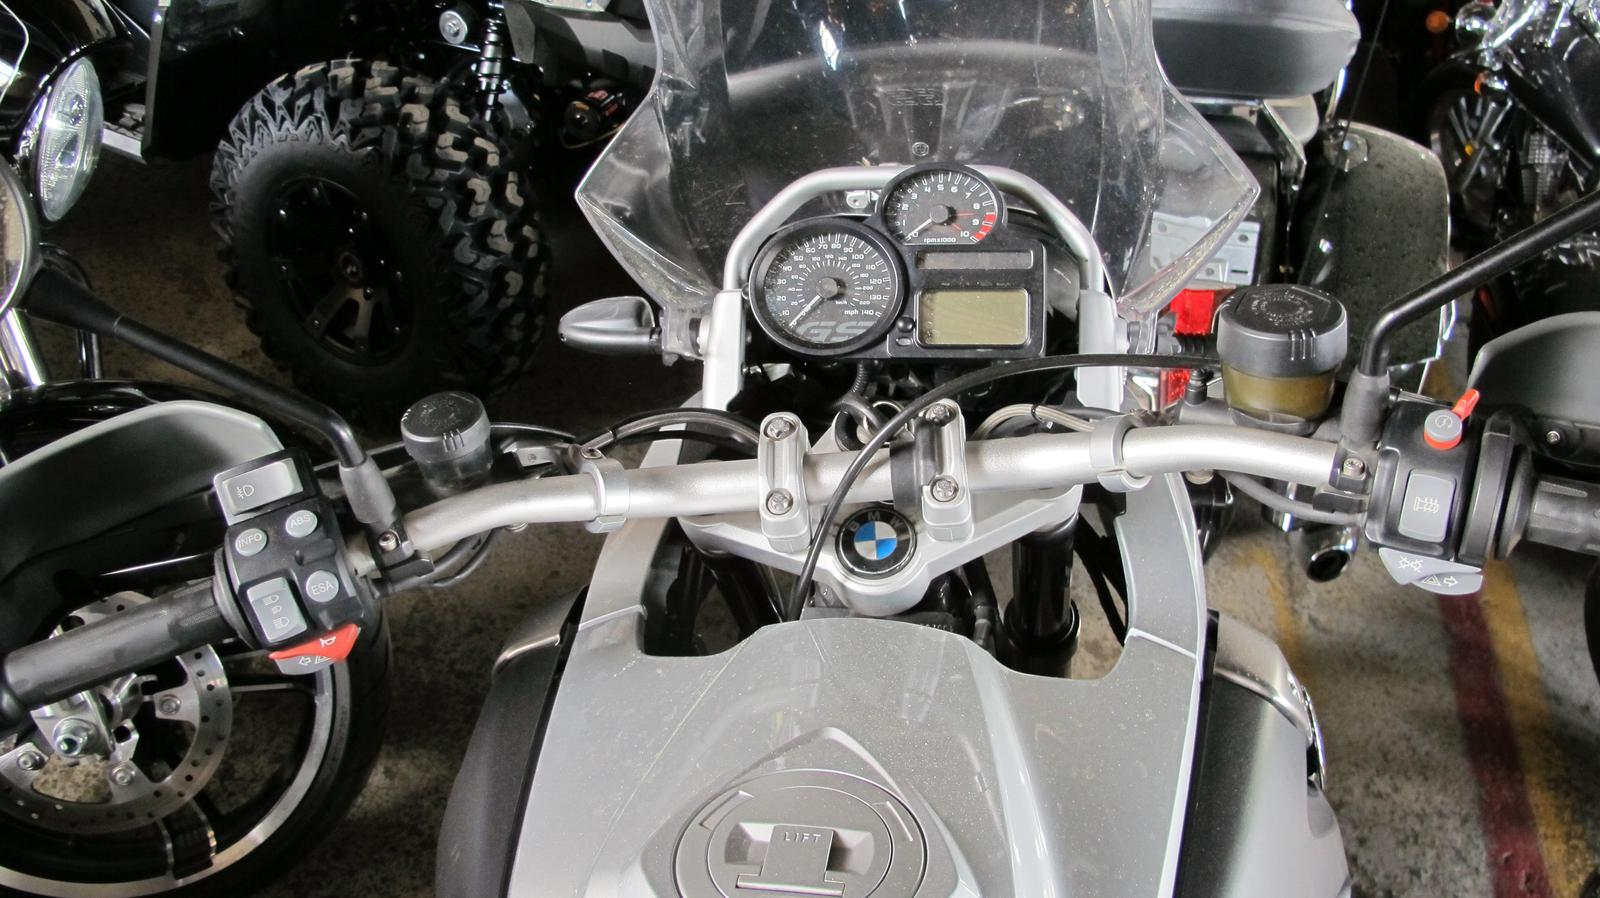 See more photos for this BMW R 1200GS PREMIUM, 2012 motorcycle listing